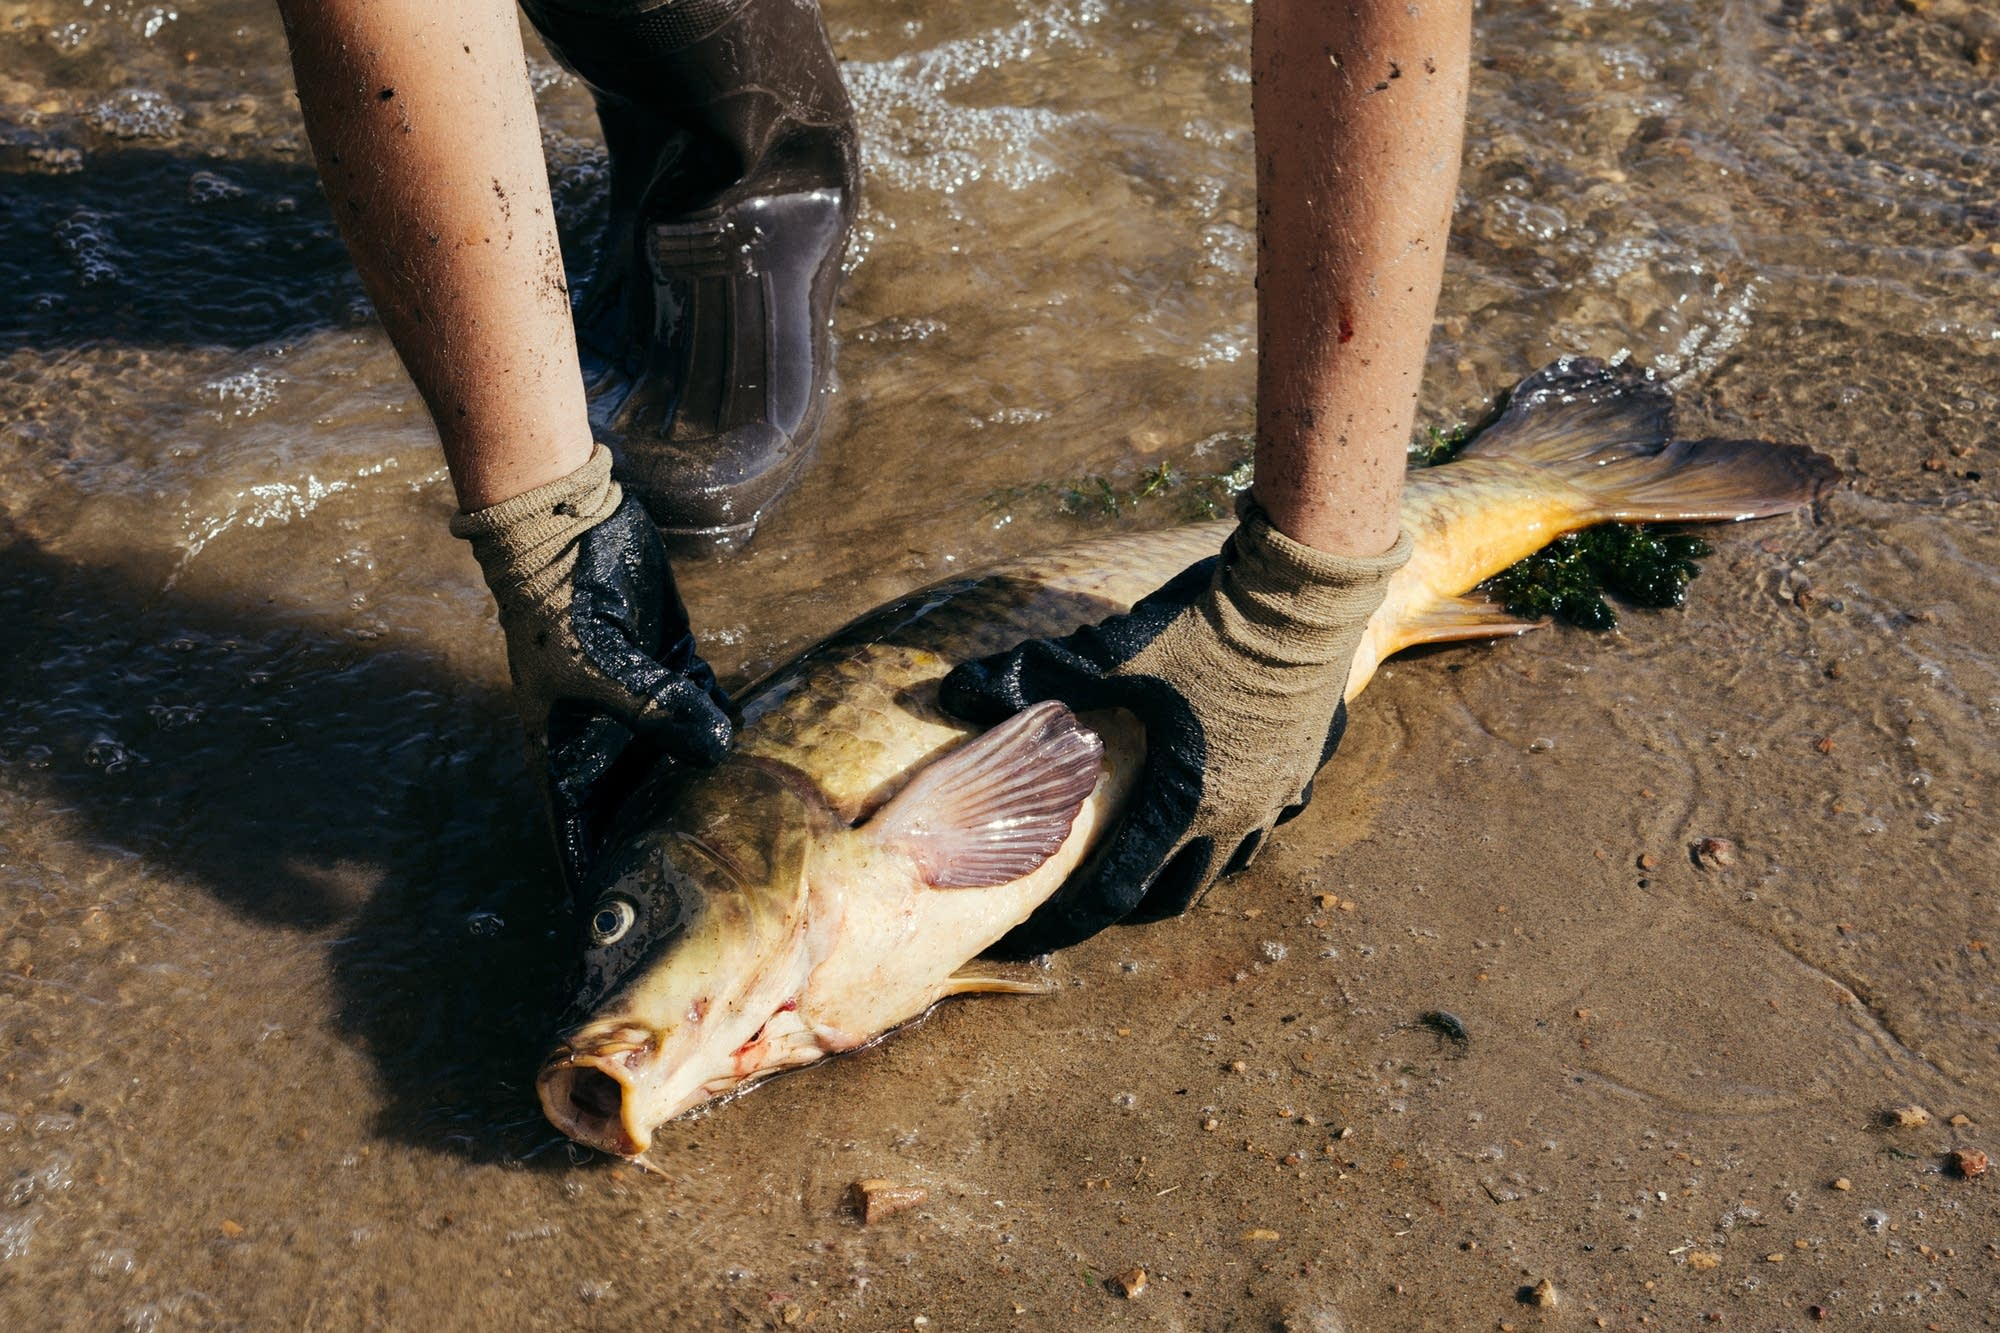 A Carp Solutions employees picks up a common carp from the shore.